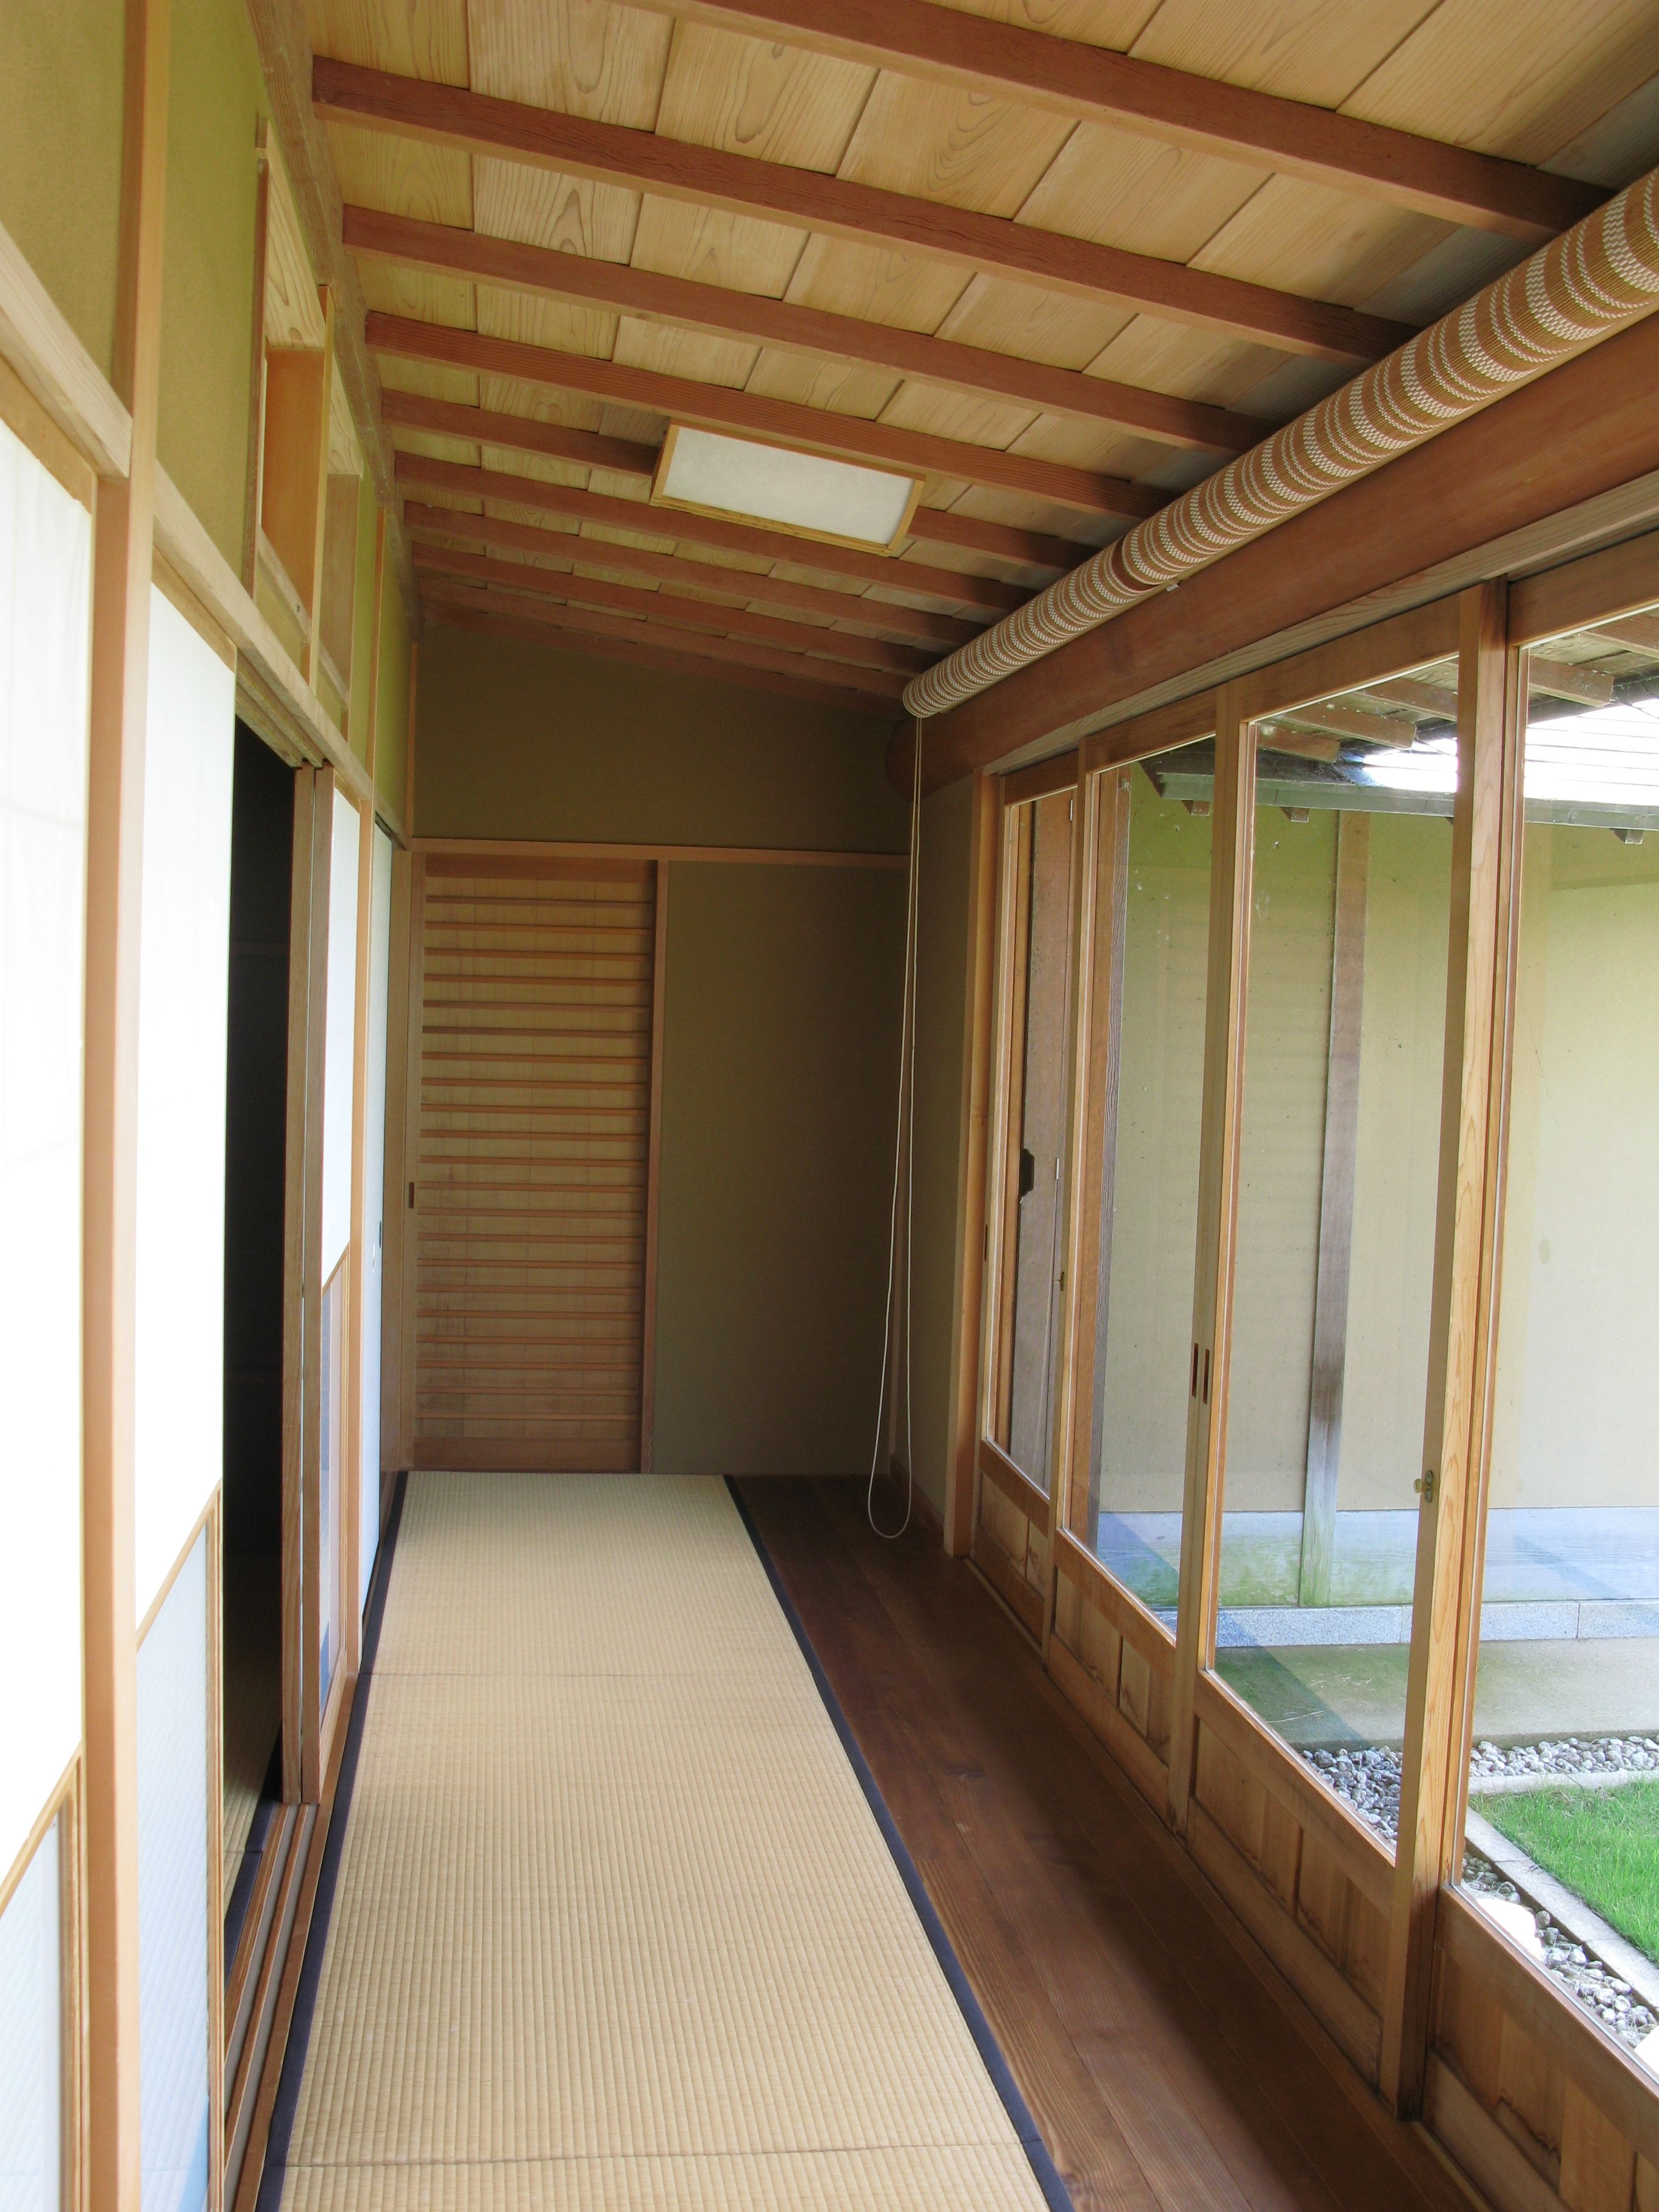 Japanese house traditional style interior design / 和室(わしつ)の ...